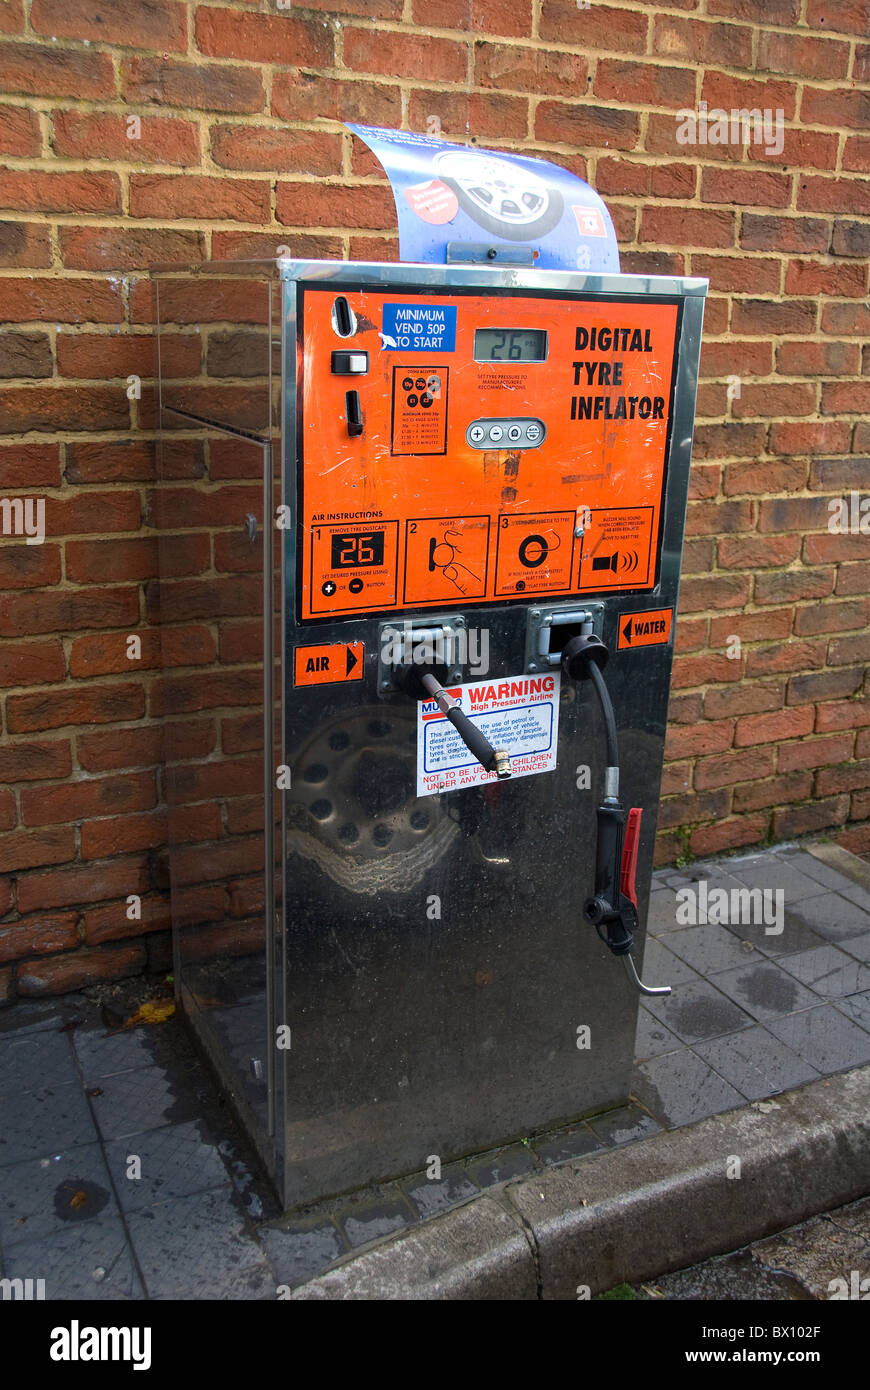 Digital tyre inflator, air and water unit at petrol station, UK Stock Photo, Royalty Free Image ...